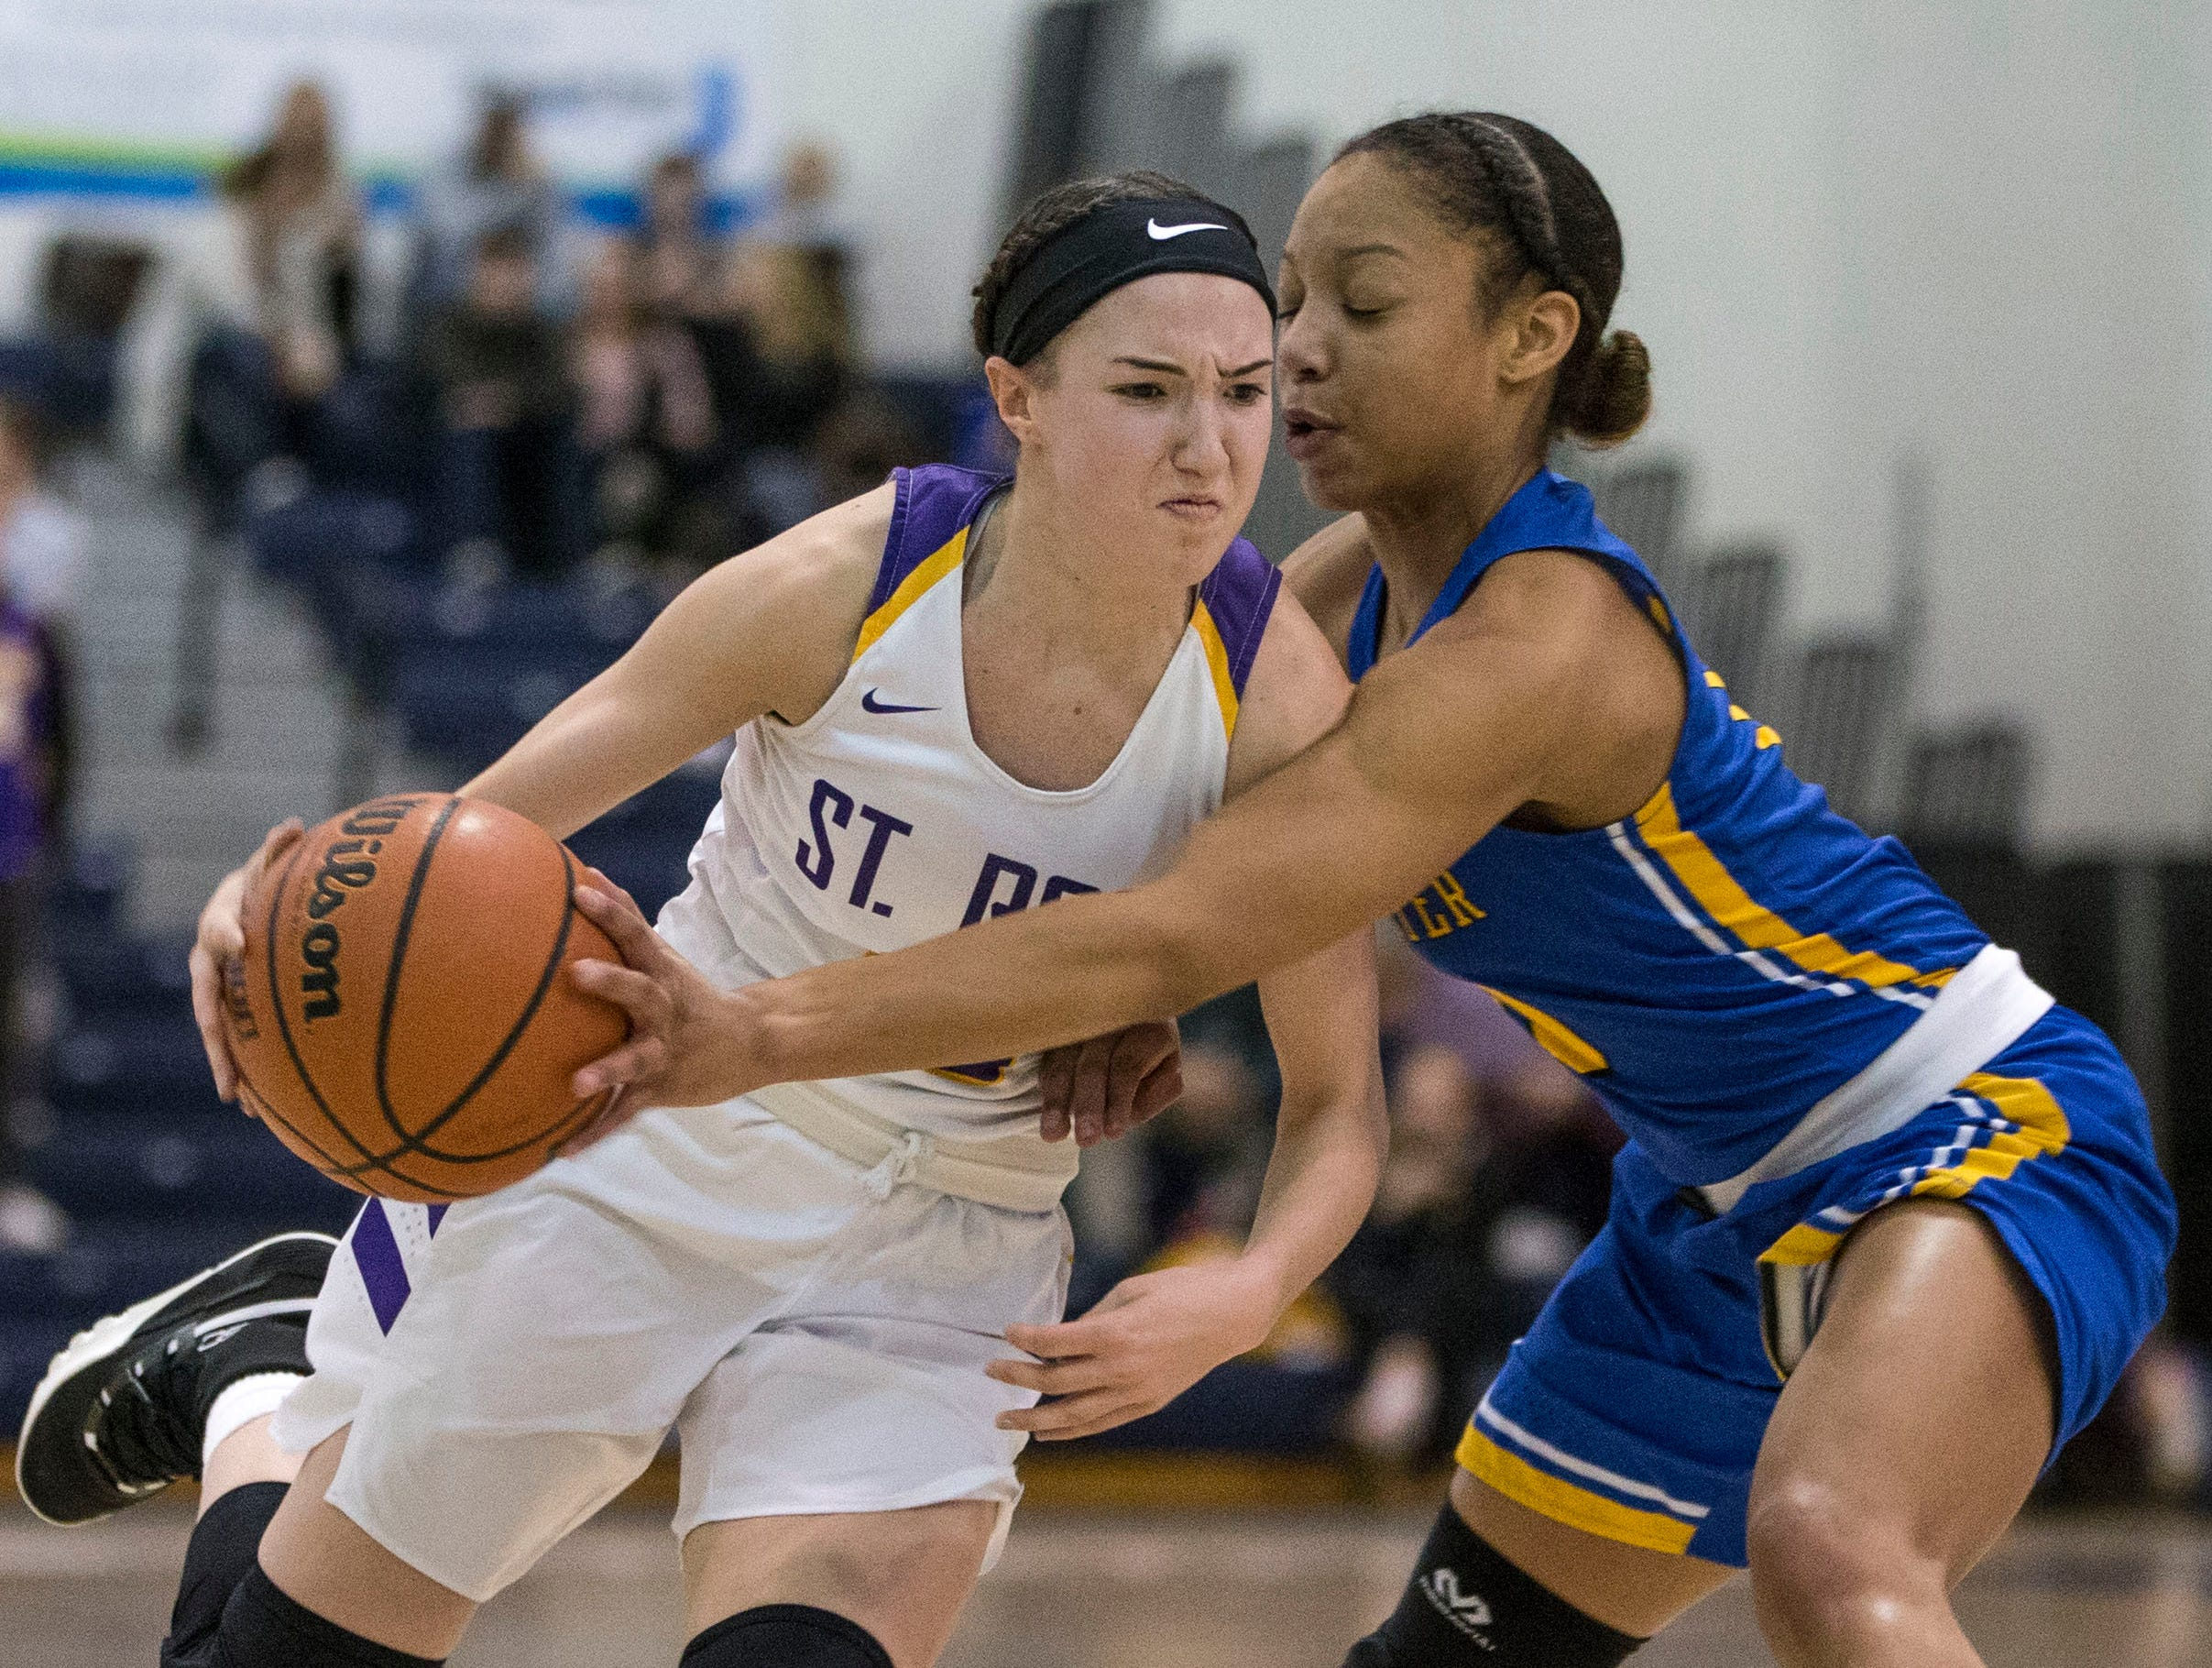 Shore Conference Tournament semifinals featuring St. Rose vs Manchester. St. Rose's Abigail Antognoli drives past Manchester's Kemari Reynolds. Toms River, NJTuesday, February 19, 2019